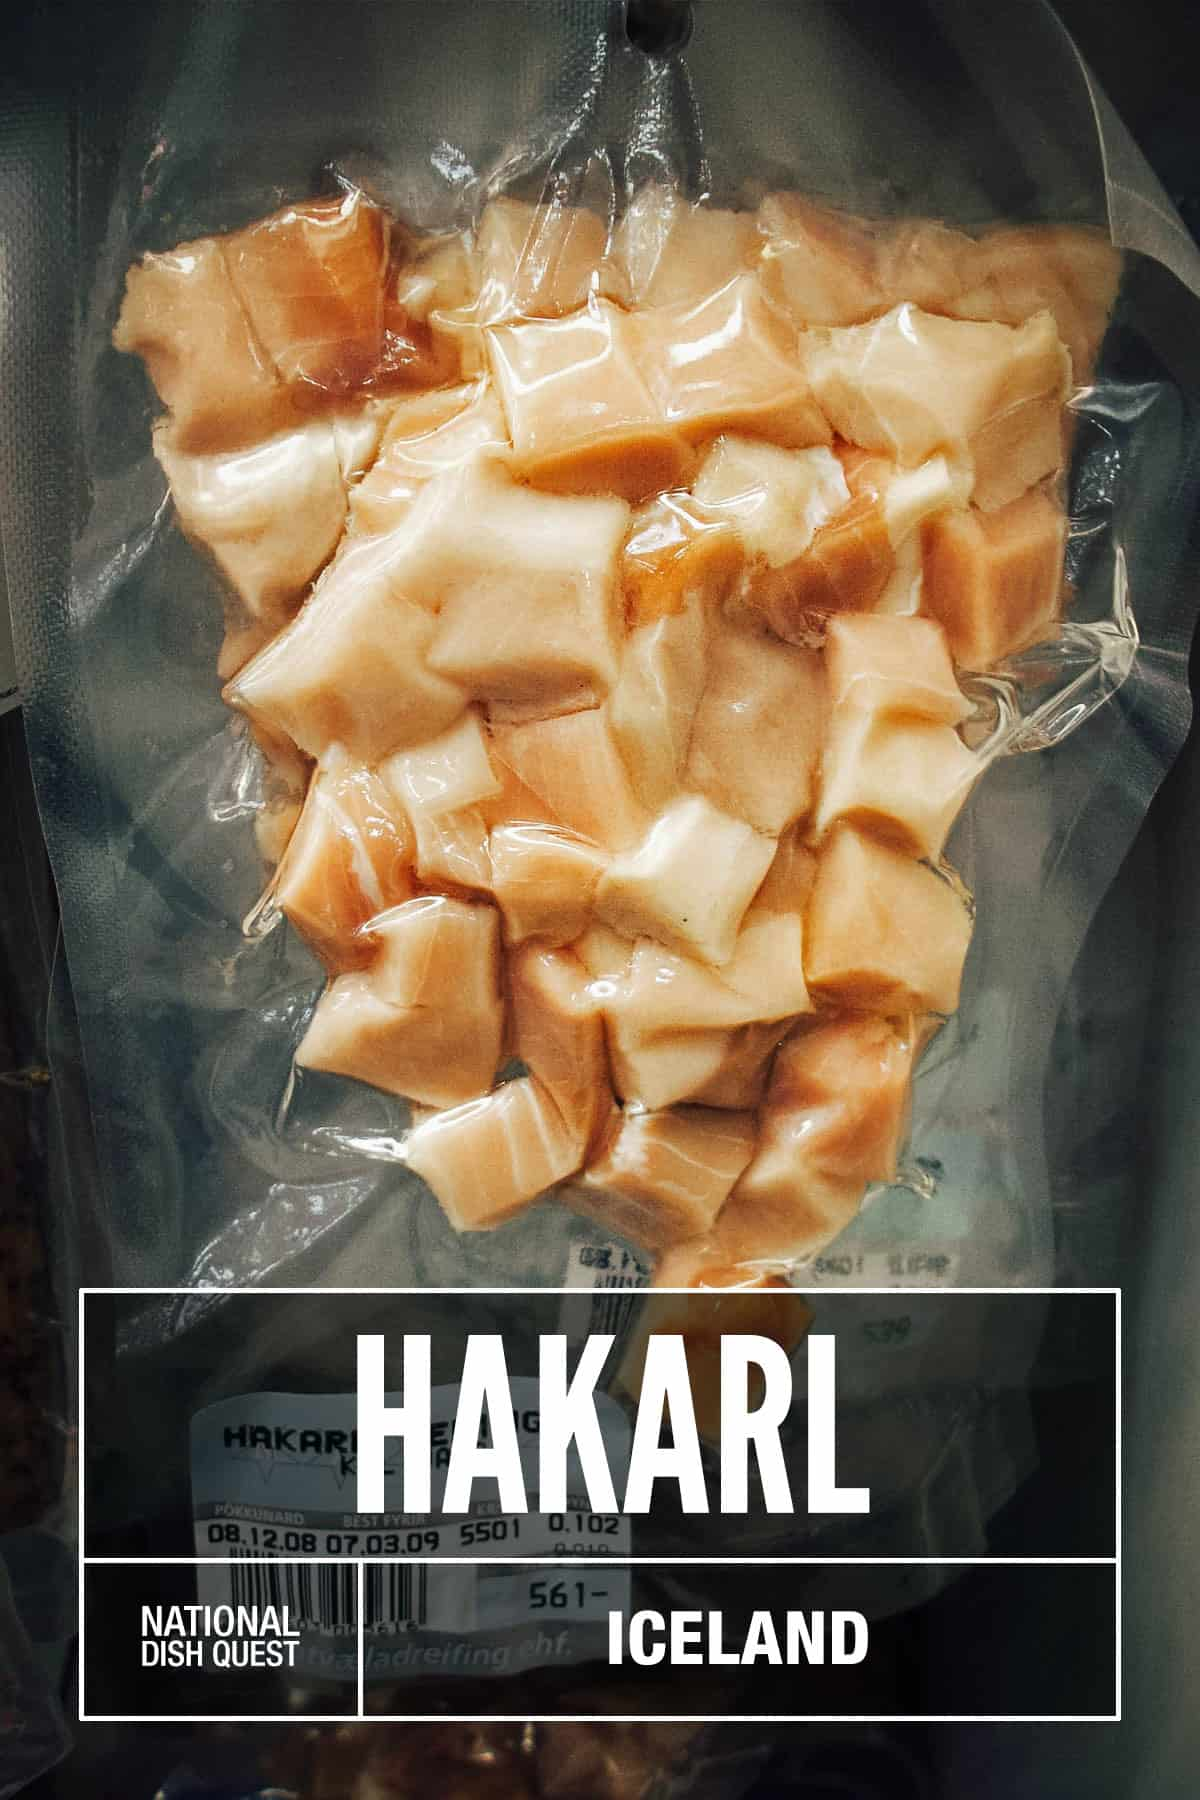 Pack of hakarl